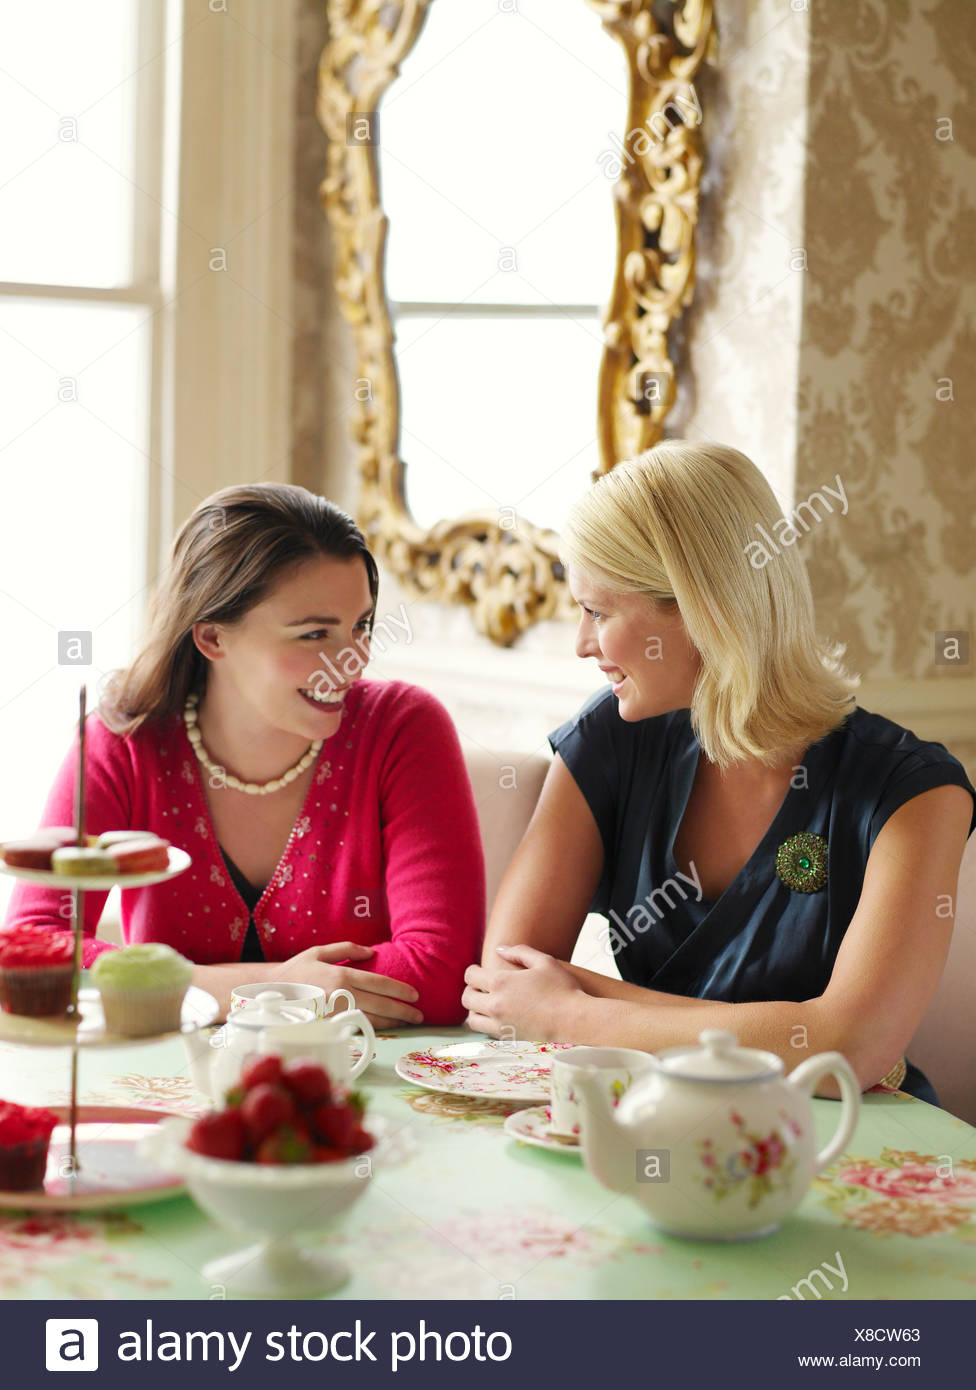 Two young women sitting at dining table Stock Photo  280566331 - Alamy 4be4eb04c